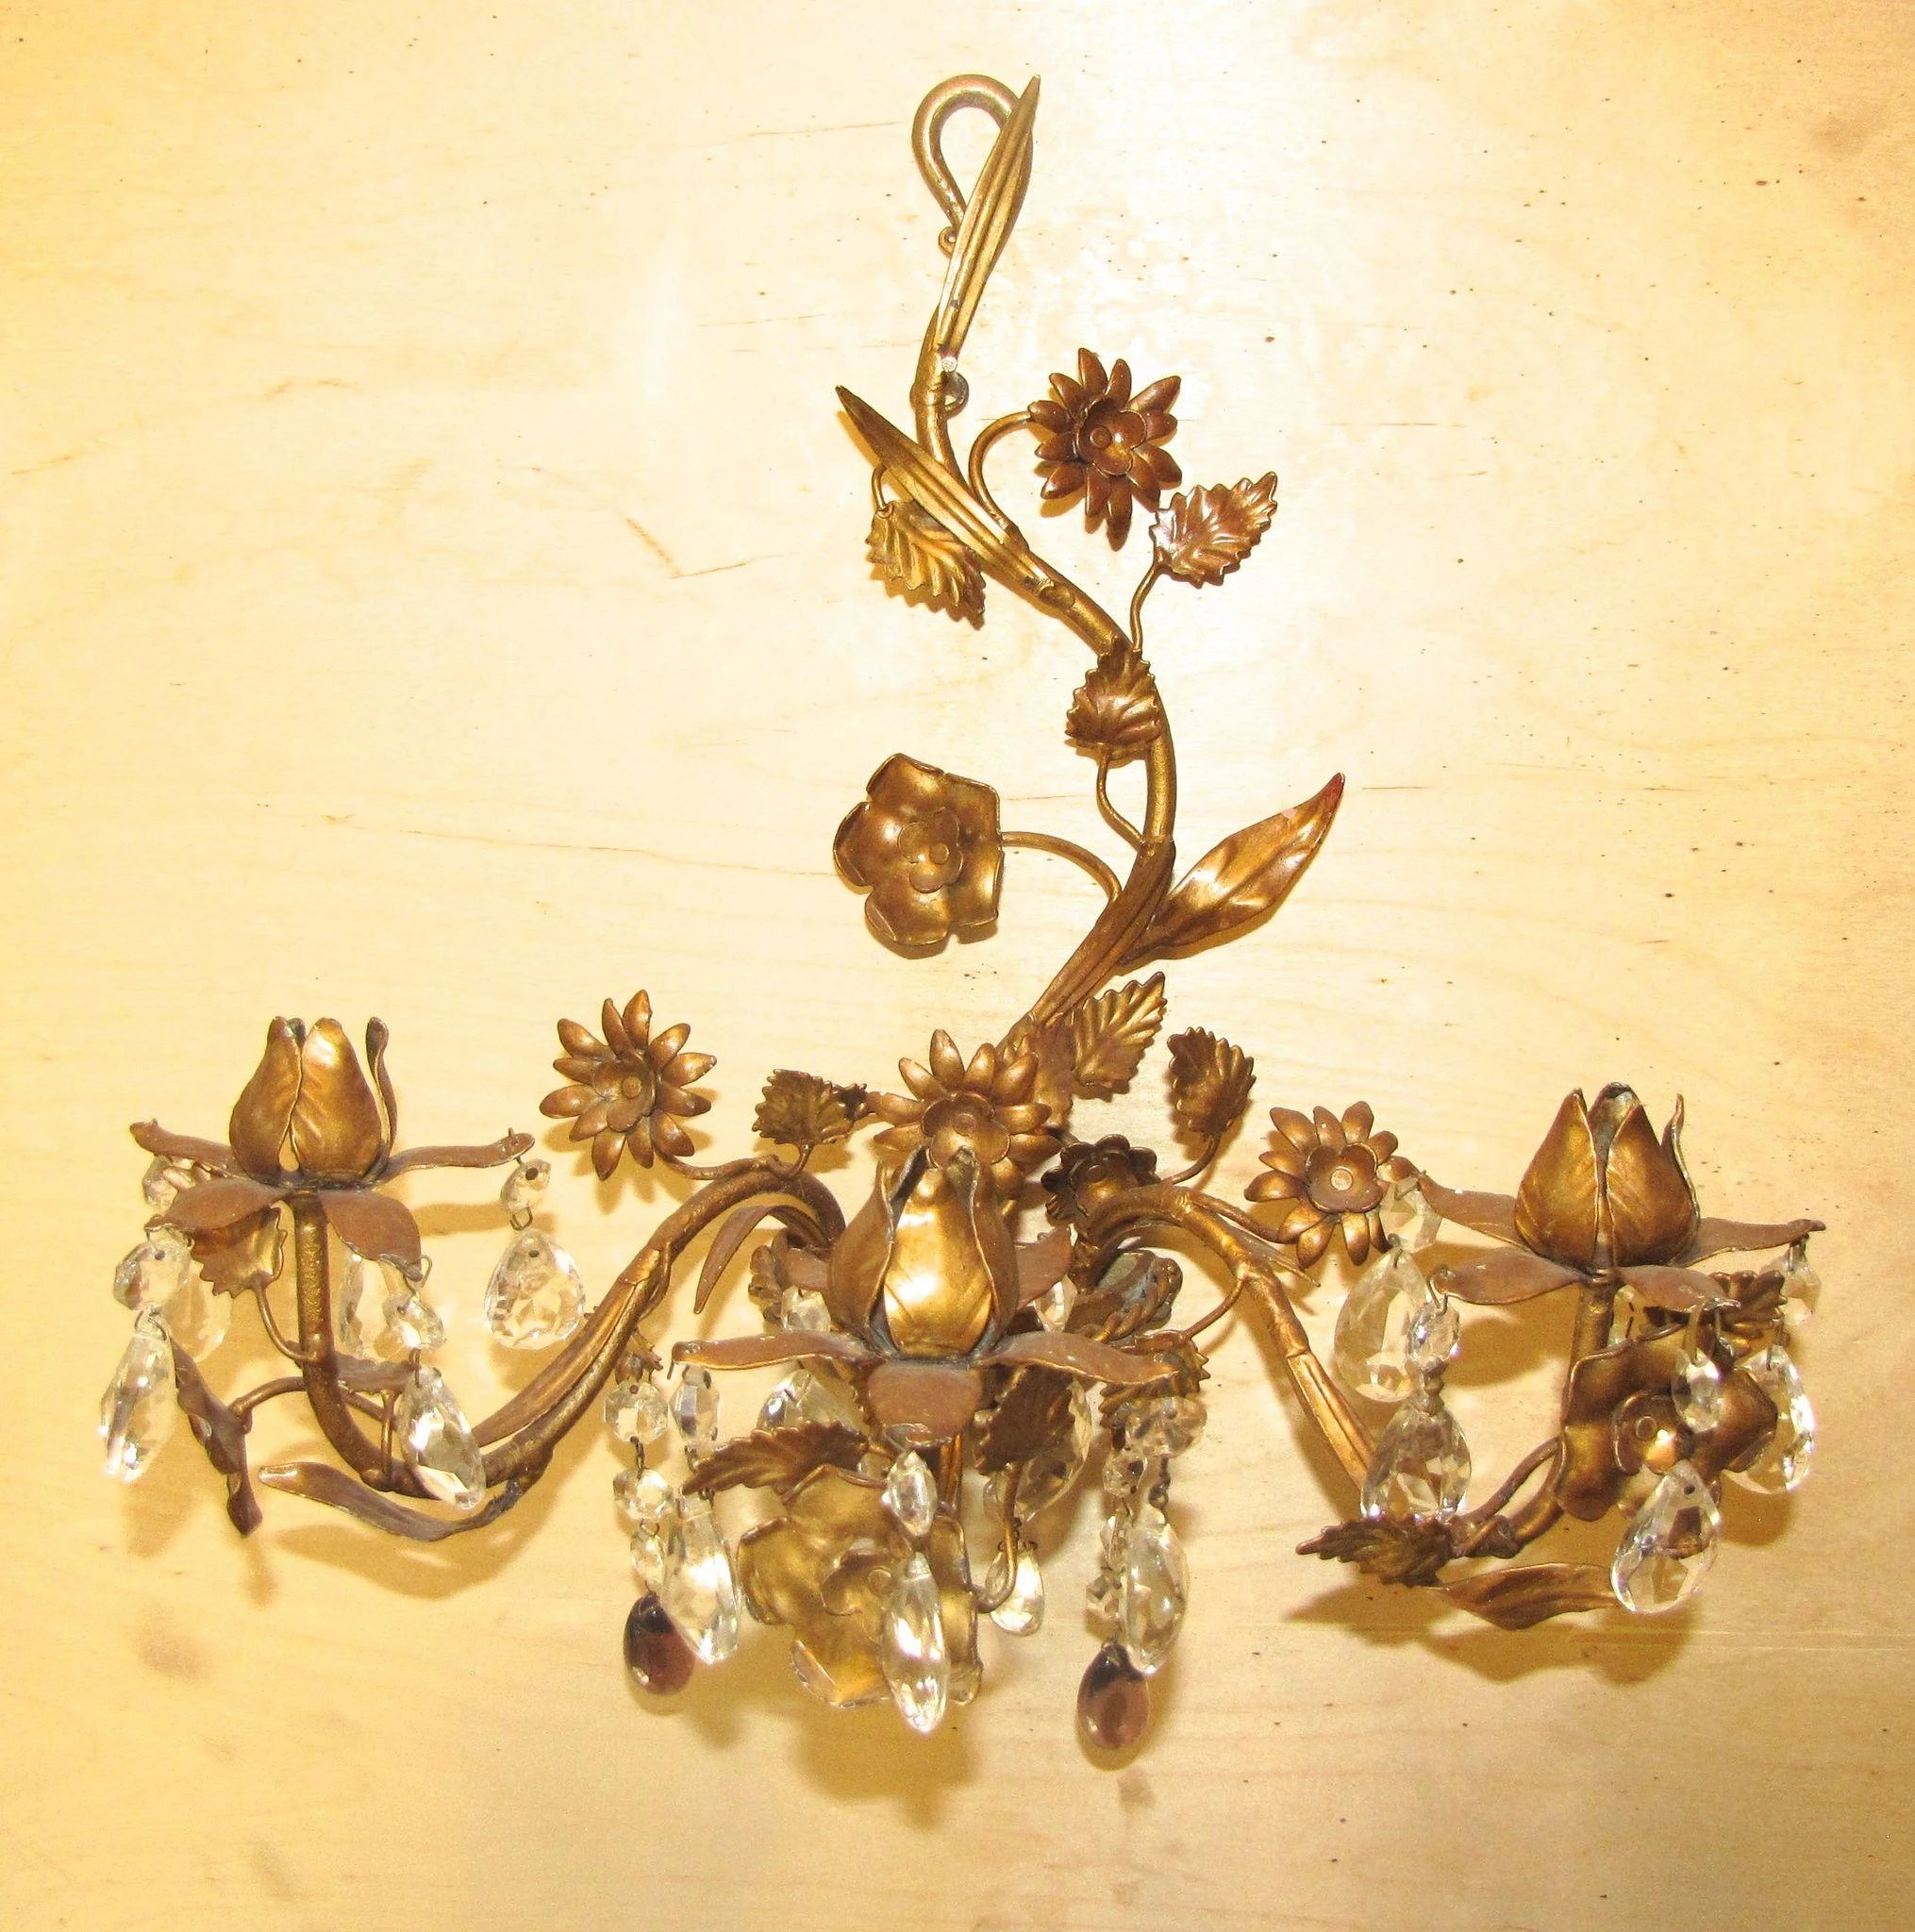 Magnificent Decorative Wall Sconces Gallery - The Wall Art ...